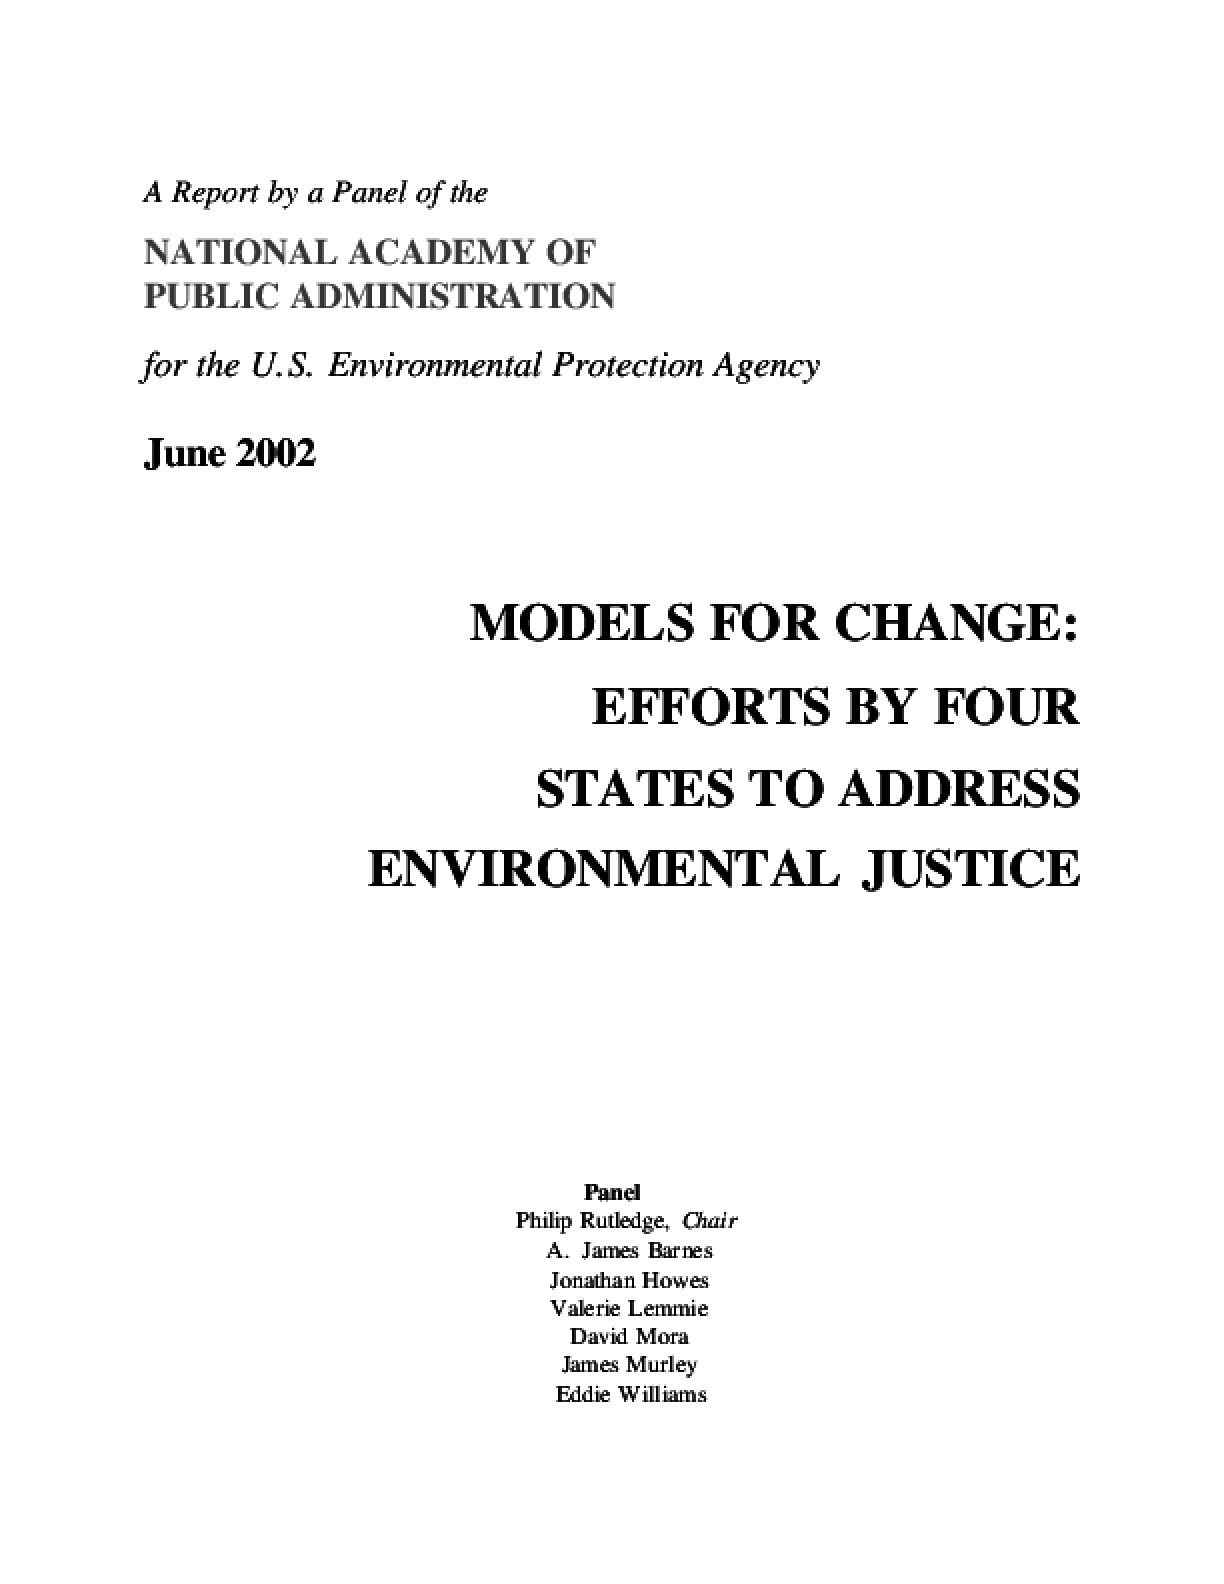 Models For Change: Efforts By Four States To Address Environmental Justice